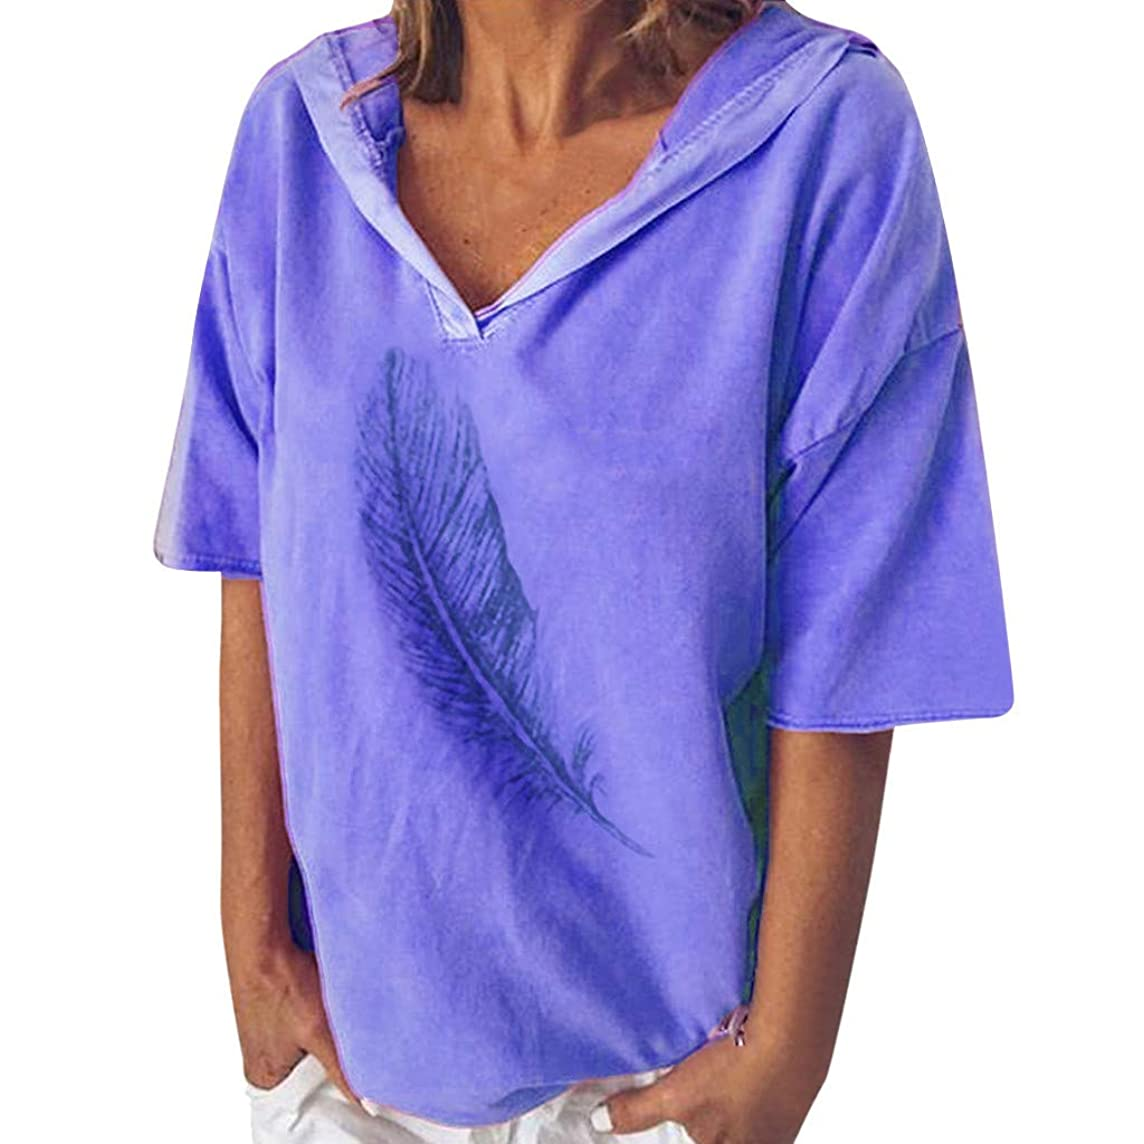 CCOOfhhc Summer Loose Blouses V-Neck T-Shirt Casual Solid Colors Tunic Tops Hooded Short Sleeve Tee Shirts